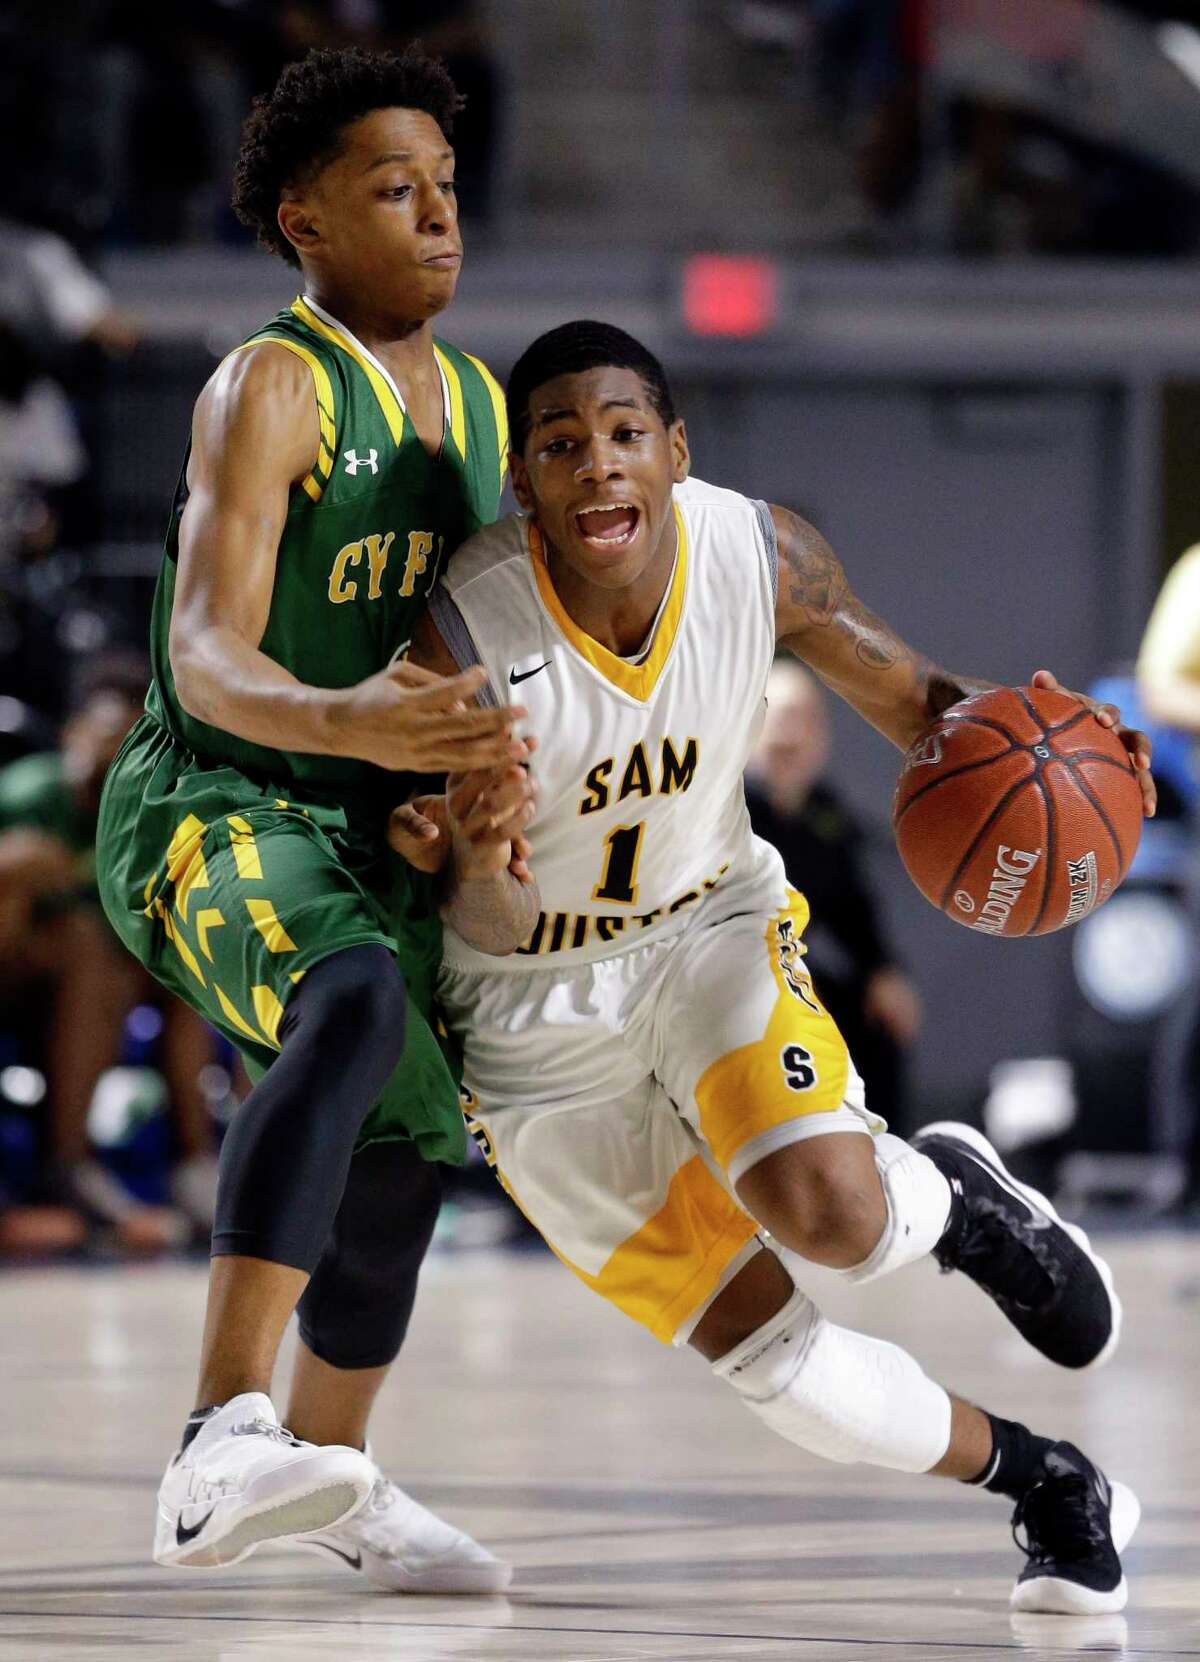 Sam Houston's Kendric Davis drives past Cy Falls' Austin Guillory during the 2nd half of their regional quarterfinal game at Delmar Fieldhouse Feb. 27, 2018 in Houston, TX. (Michael Wyke / For the Chronicle)